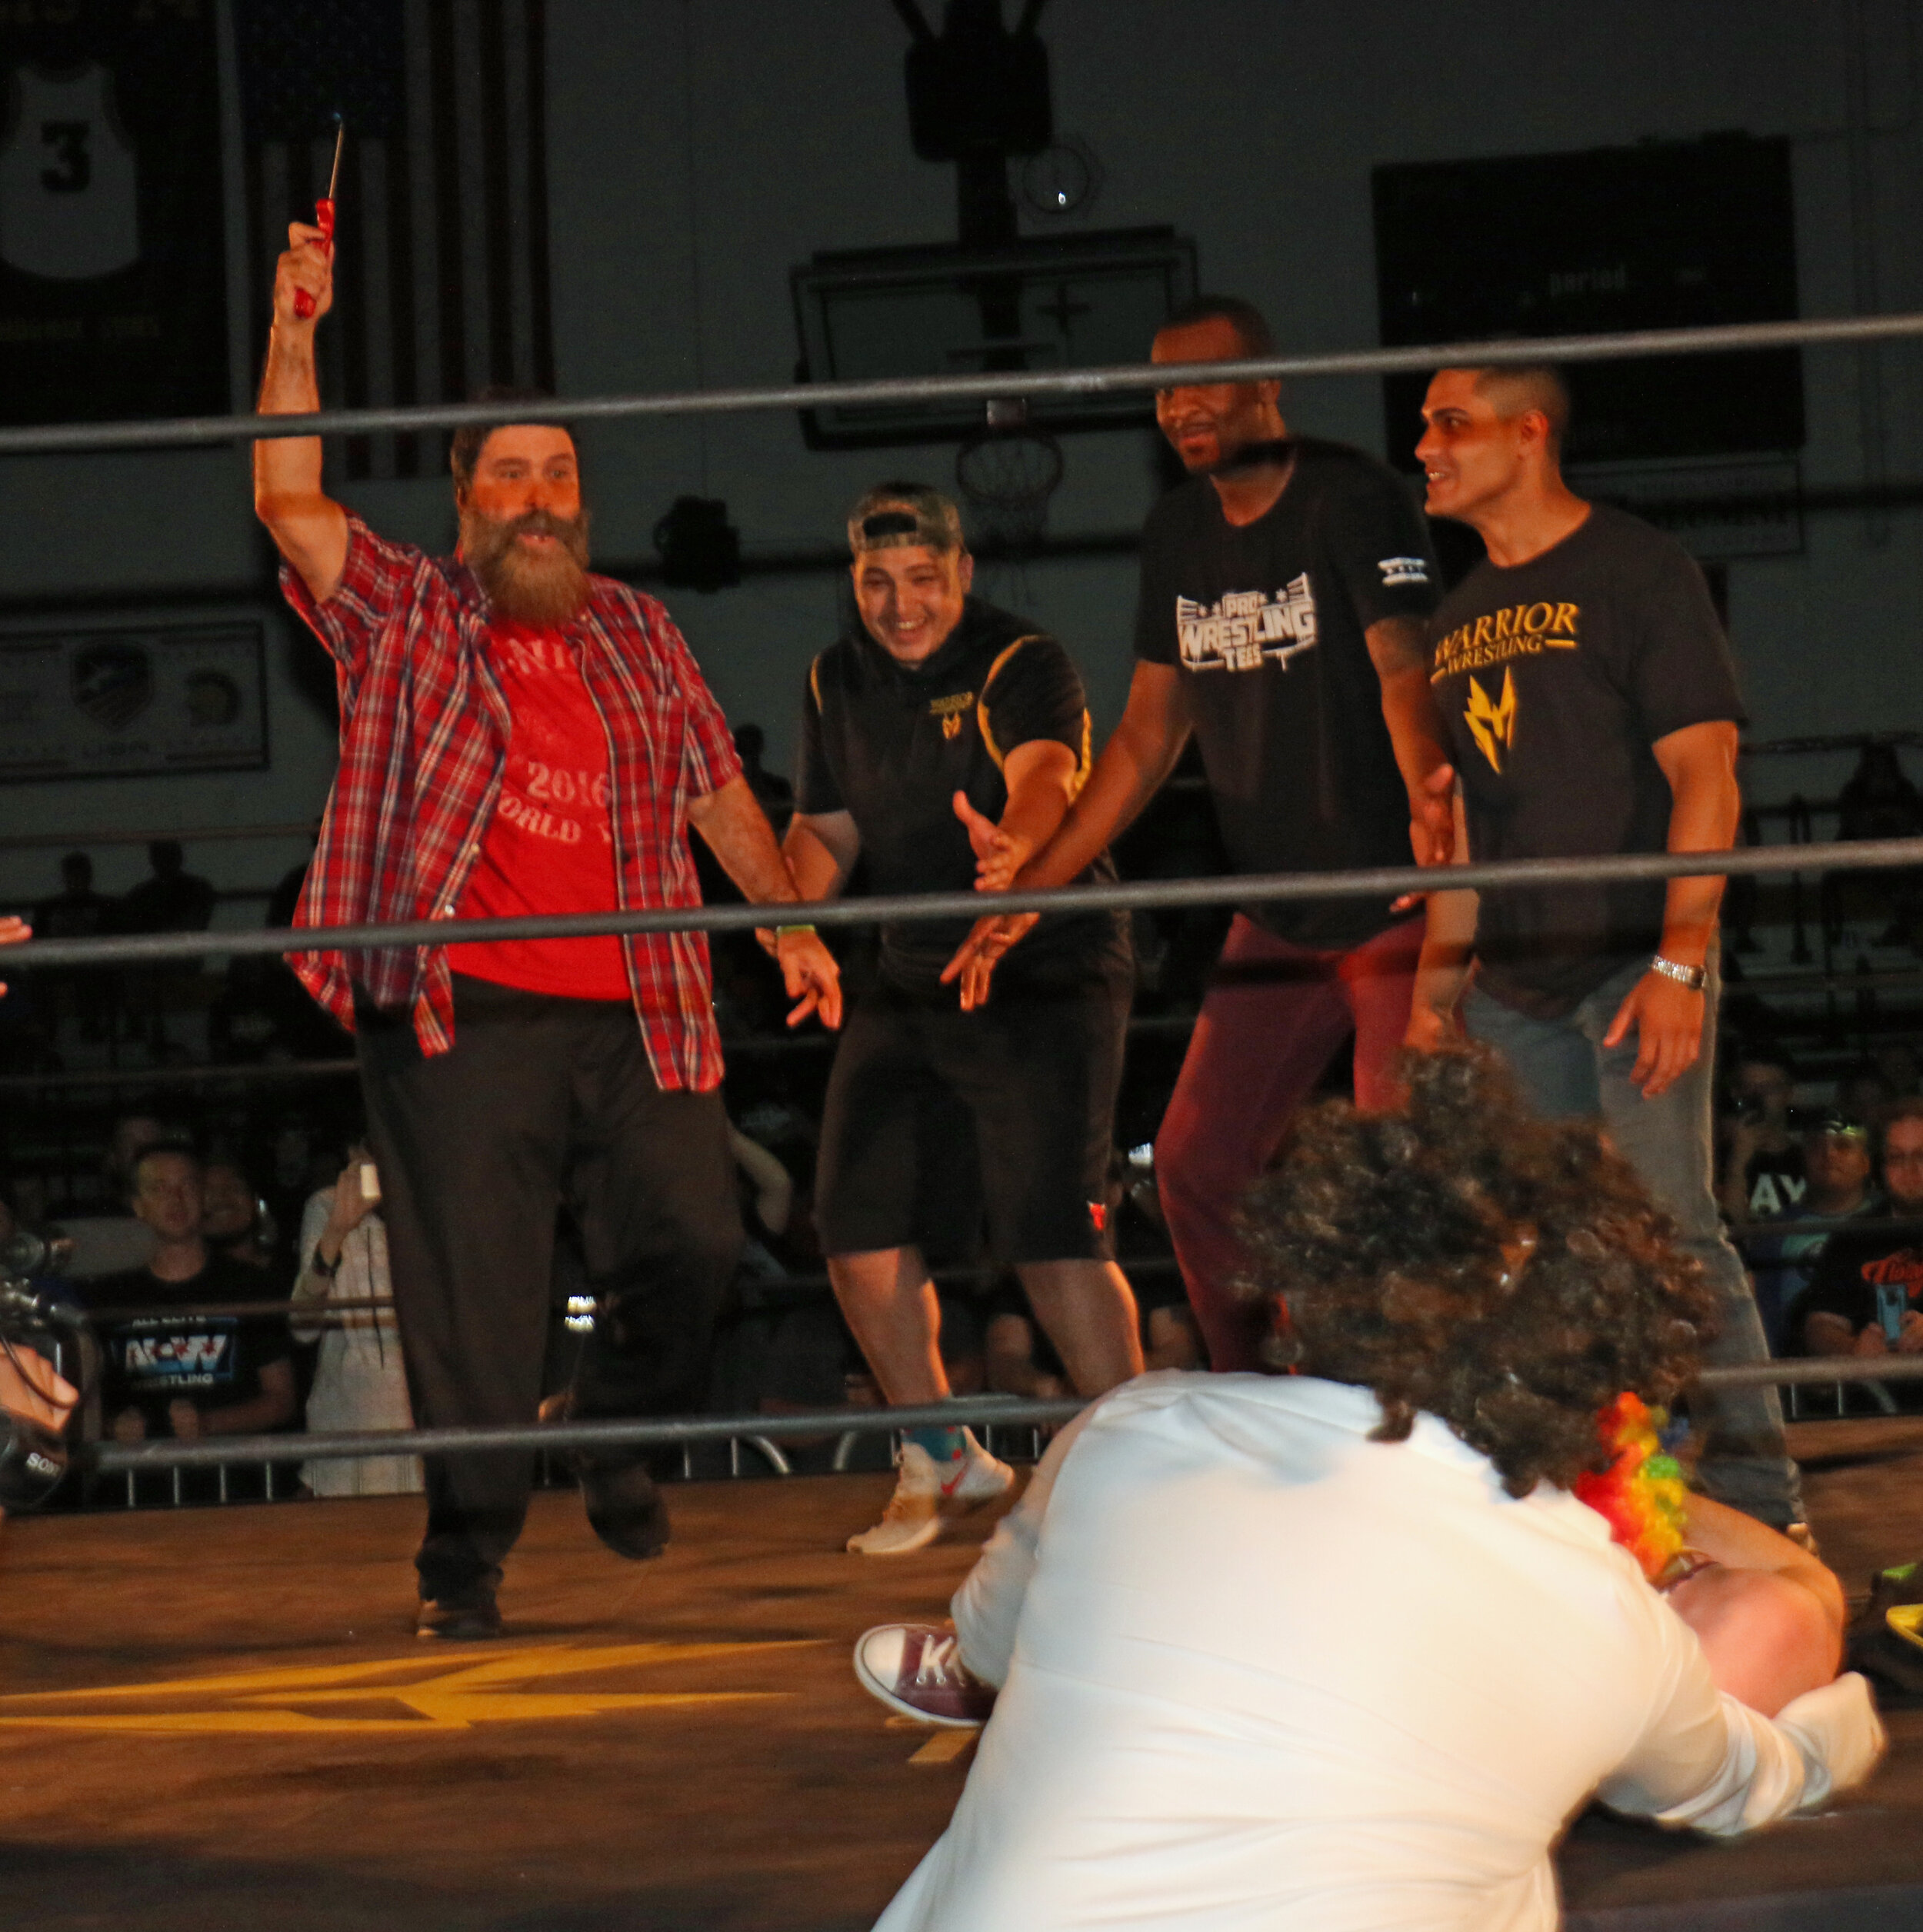 Before Mick Foley could light Frank the Clown on fire, Frank's friends make the save.